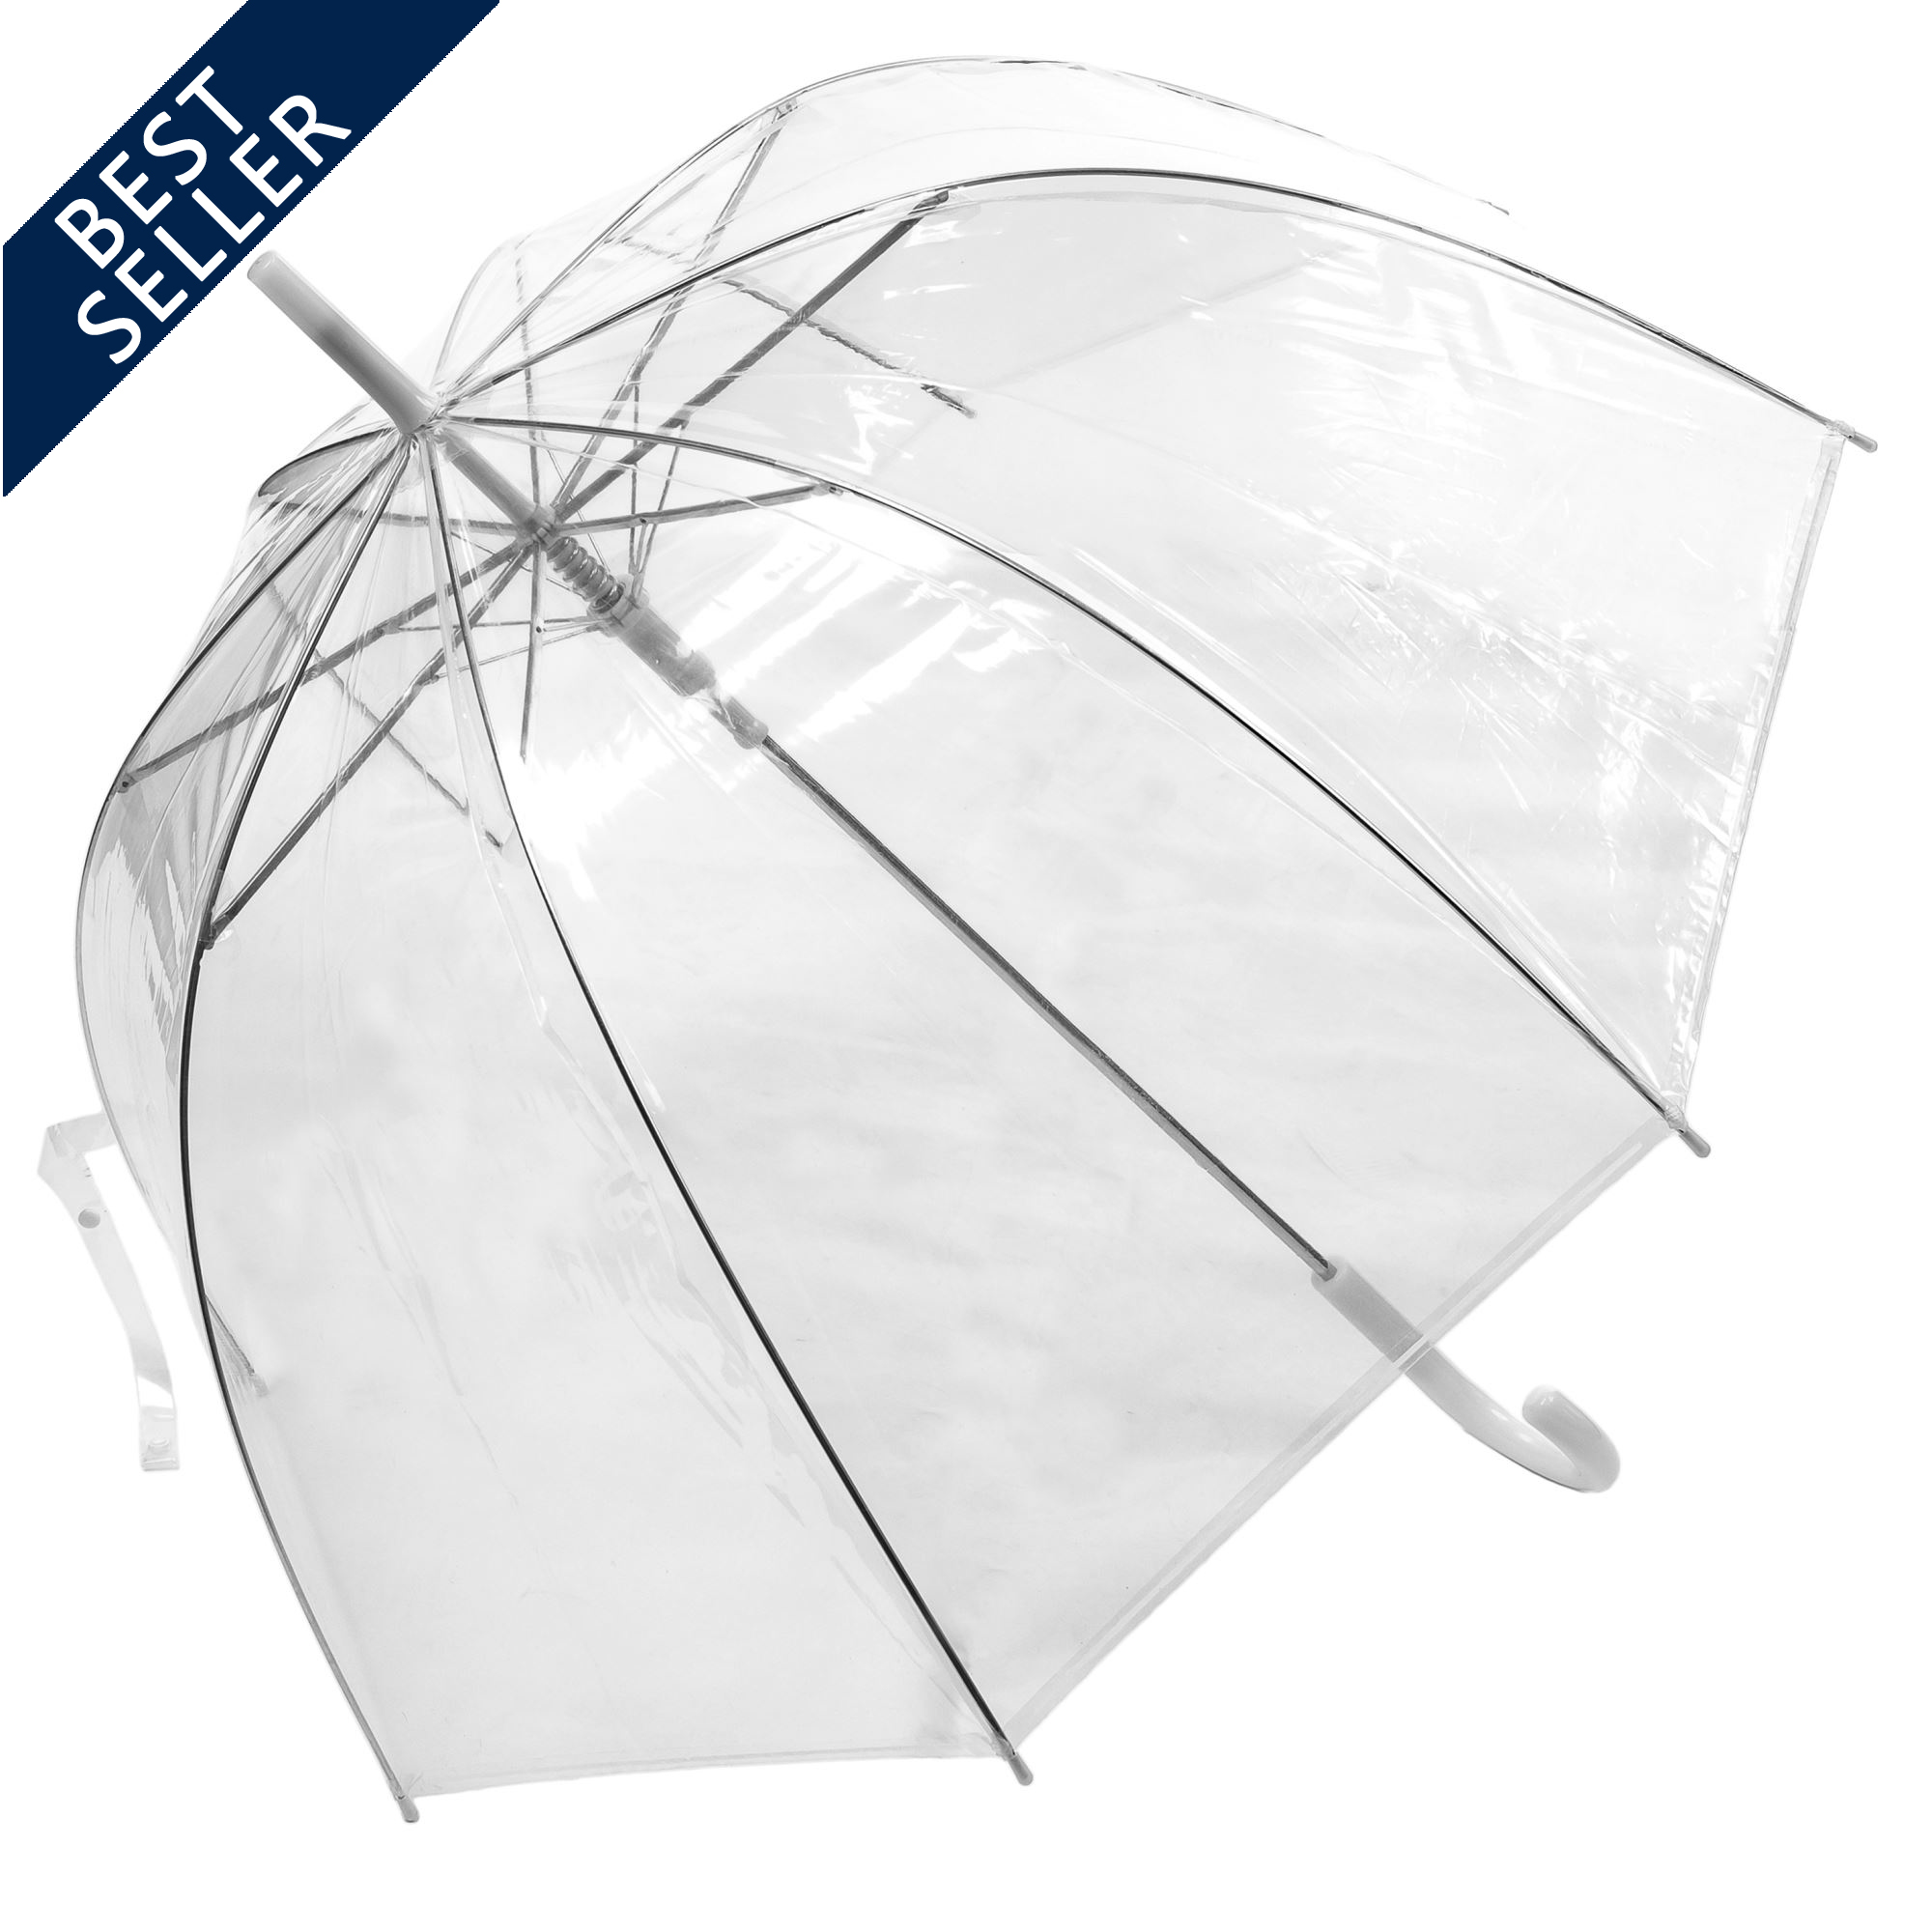 Click to view Auto Open Clear Dome Umbrella (3476)